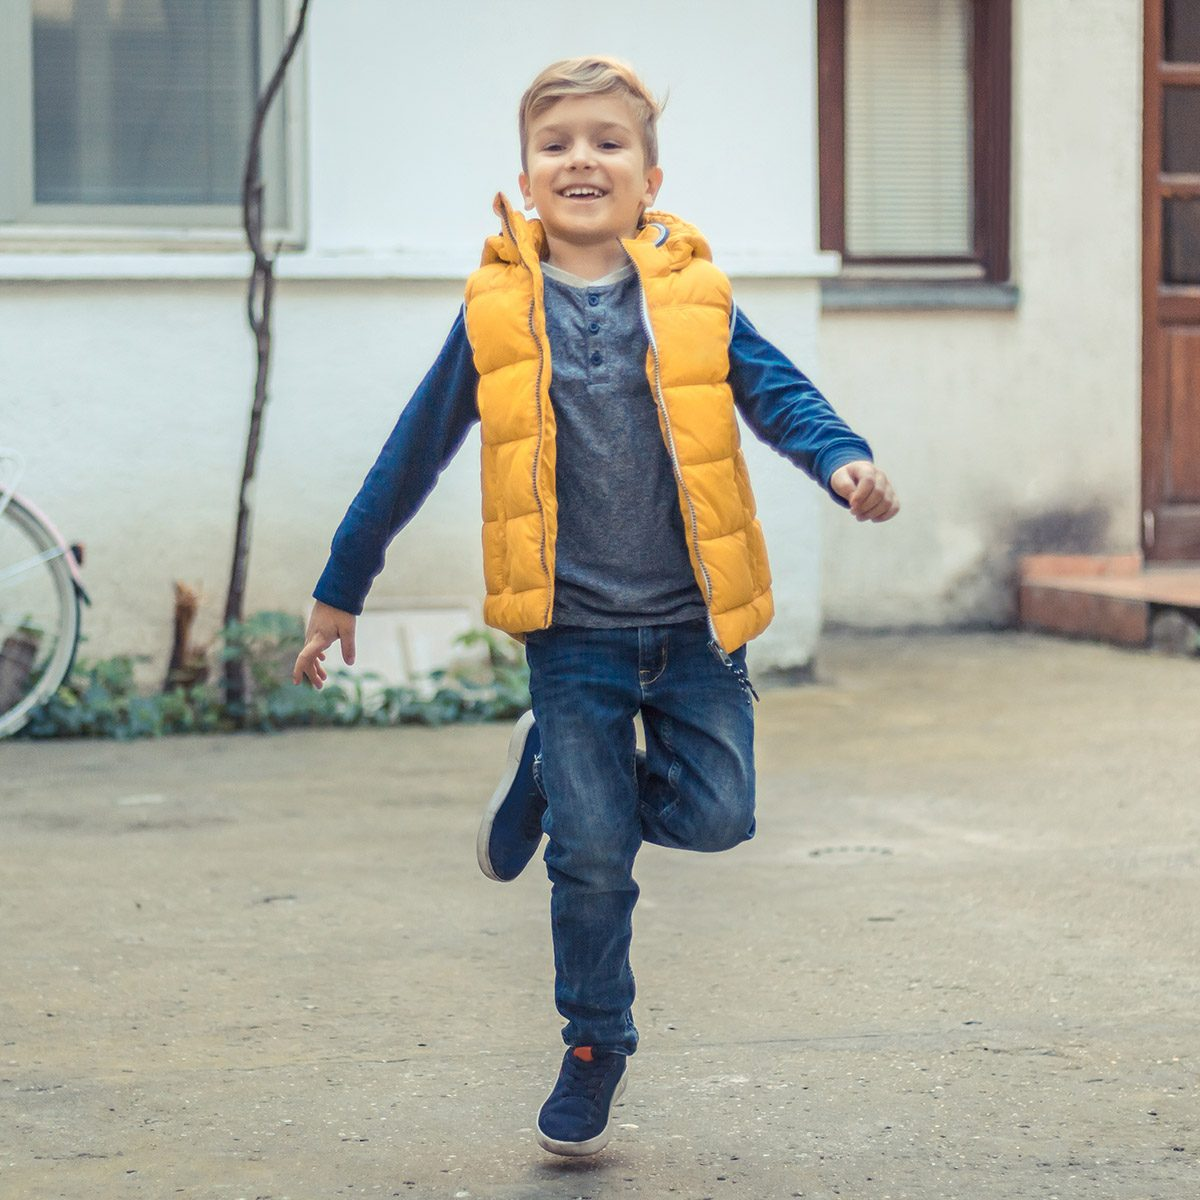 Happy kid having fun and jumping on one leg outdoors.